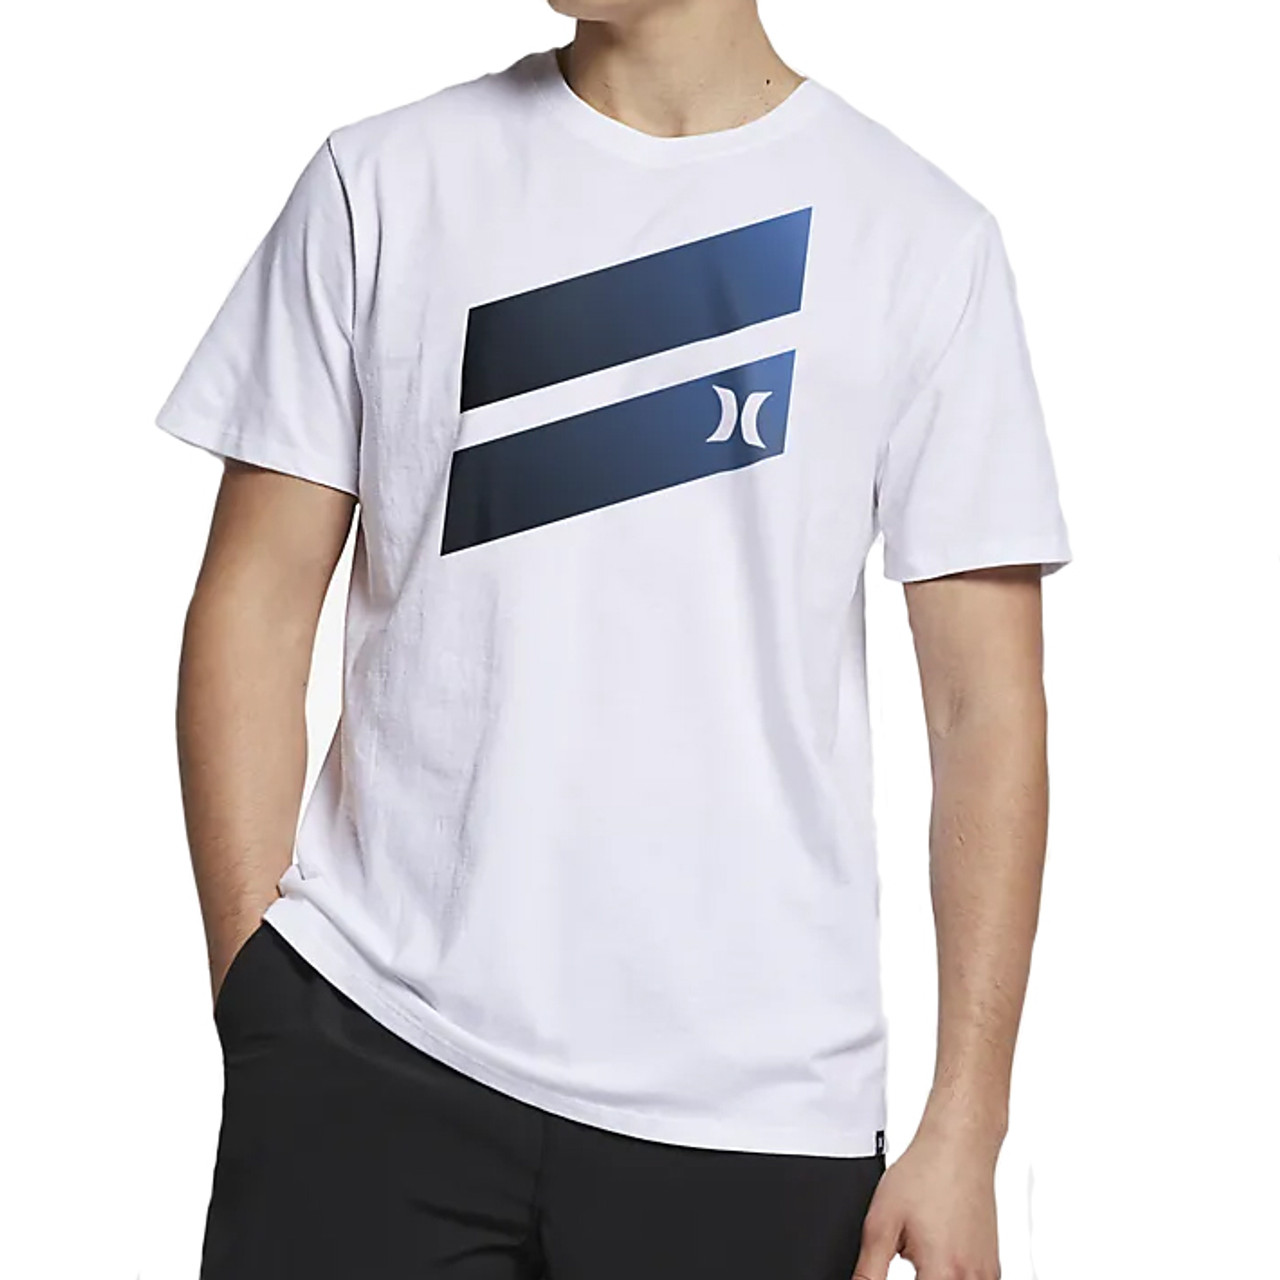 bf85373a6 Hurley Tee Shirt - Icon Slash Gradient - White 2019 - Surf and Dirt